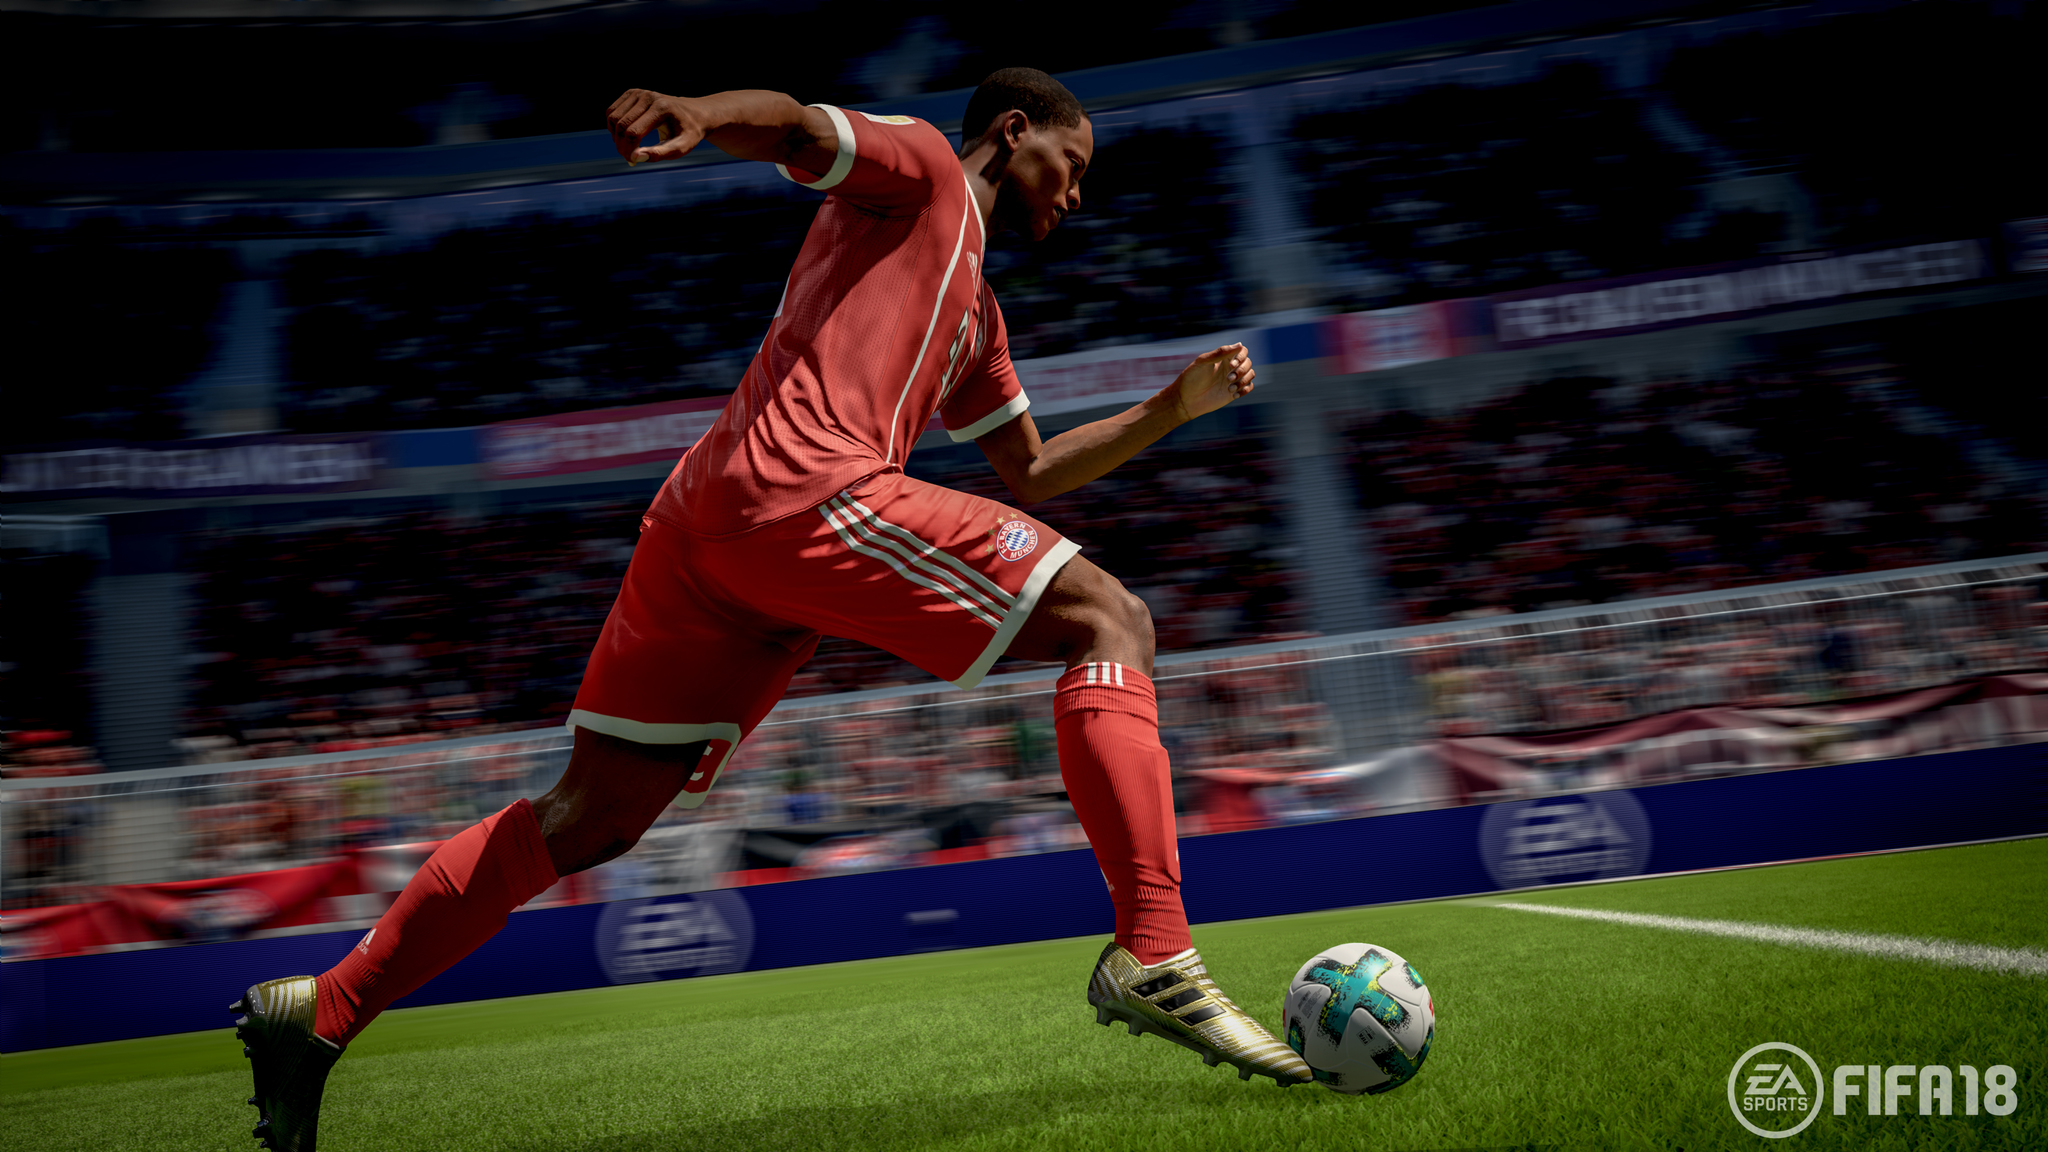 Review: FIFA 18 excels in storytelling but suffers from gameplay inconsistencies